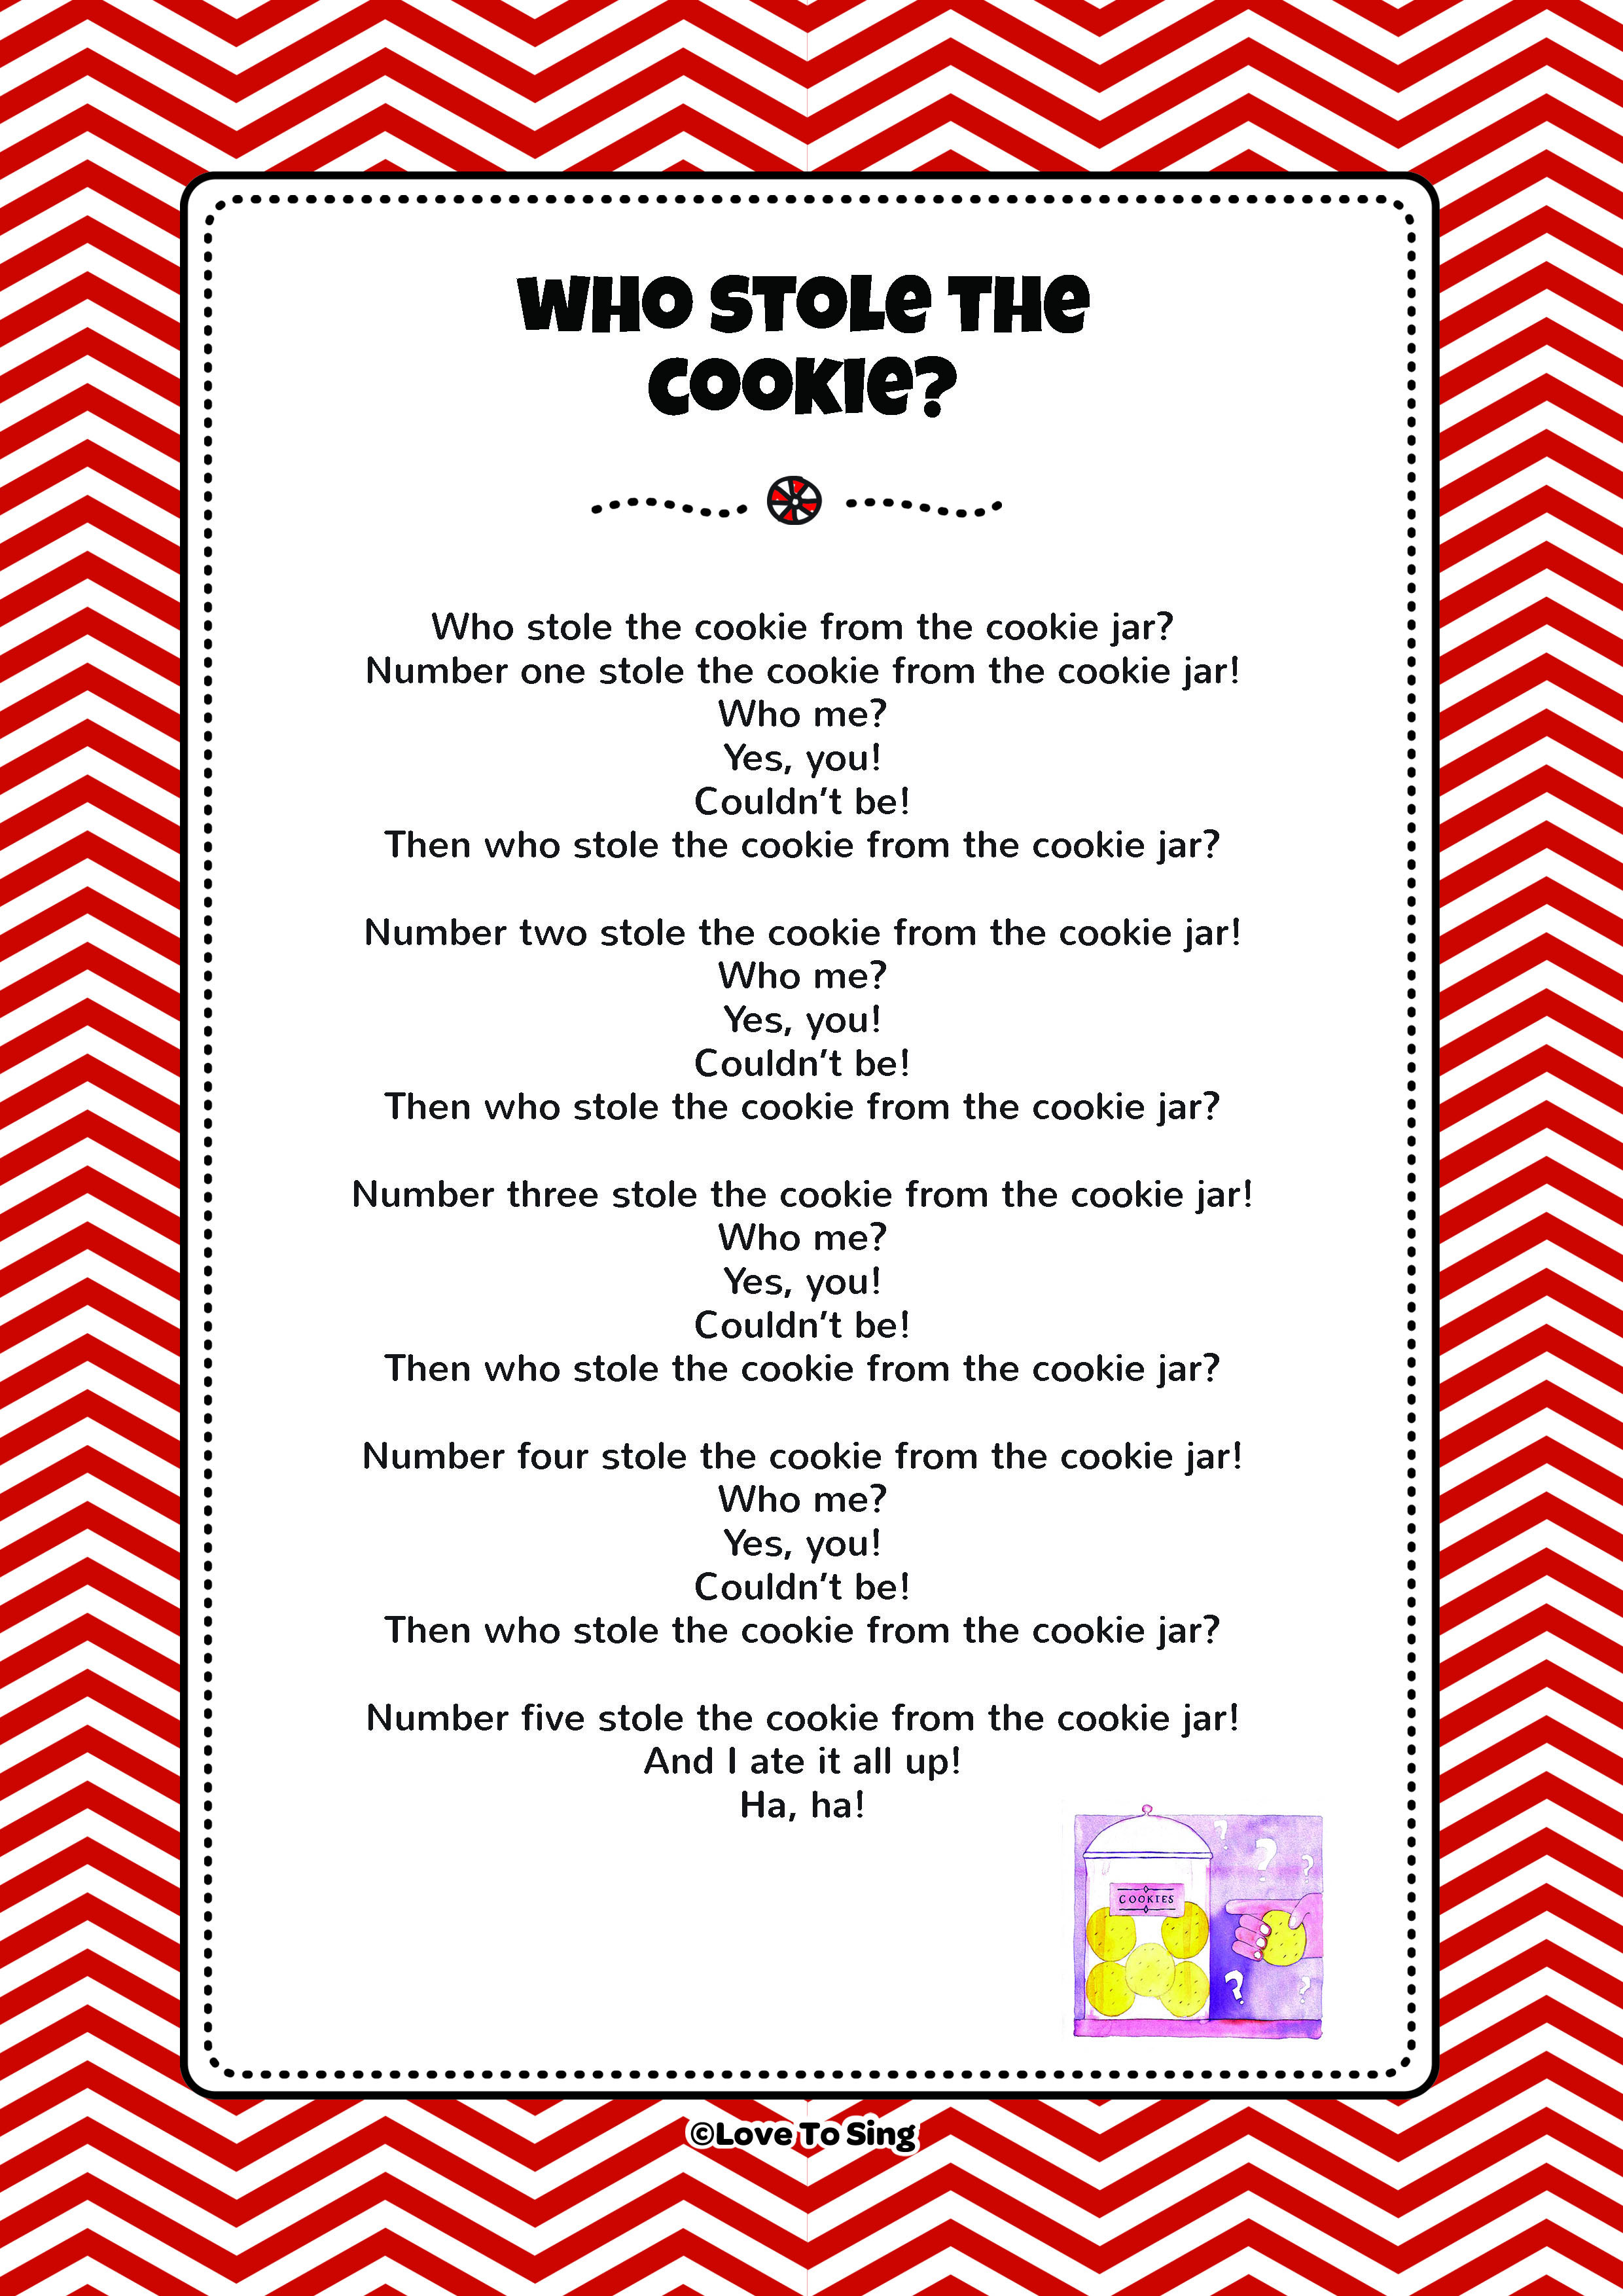 Christmas Cookies Song Lyrics  Who Stole The Cookie